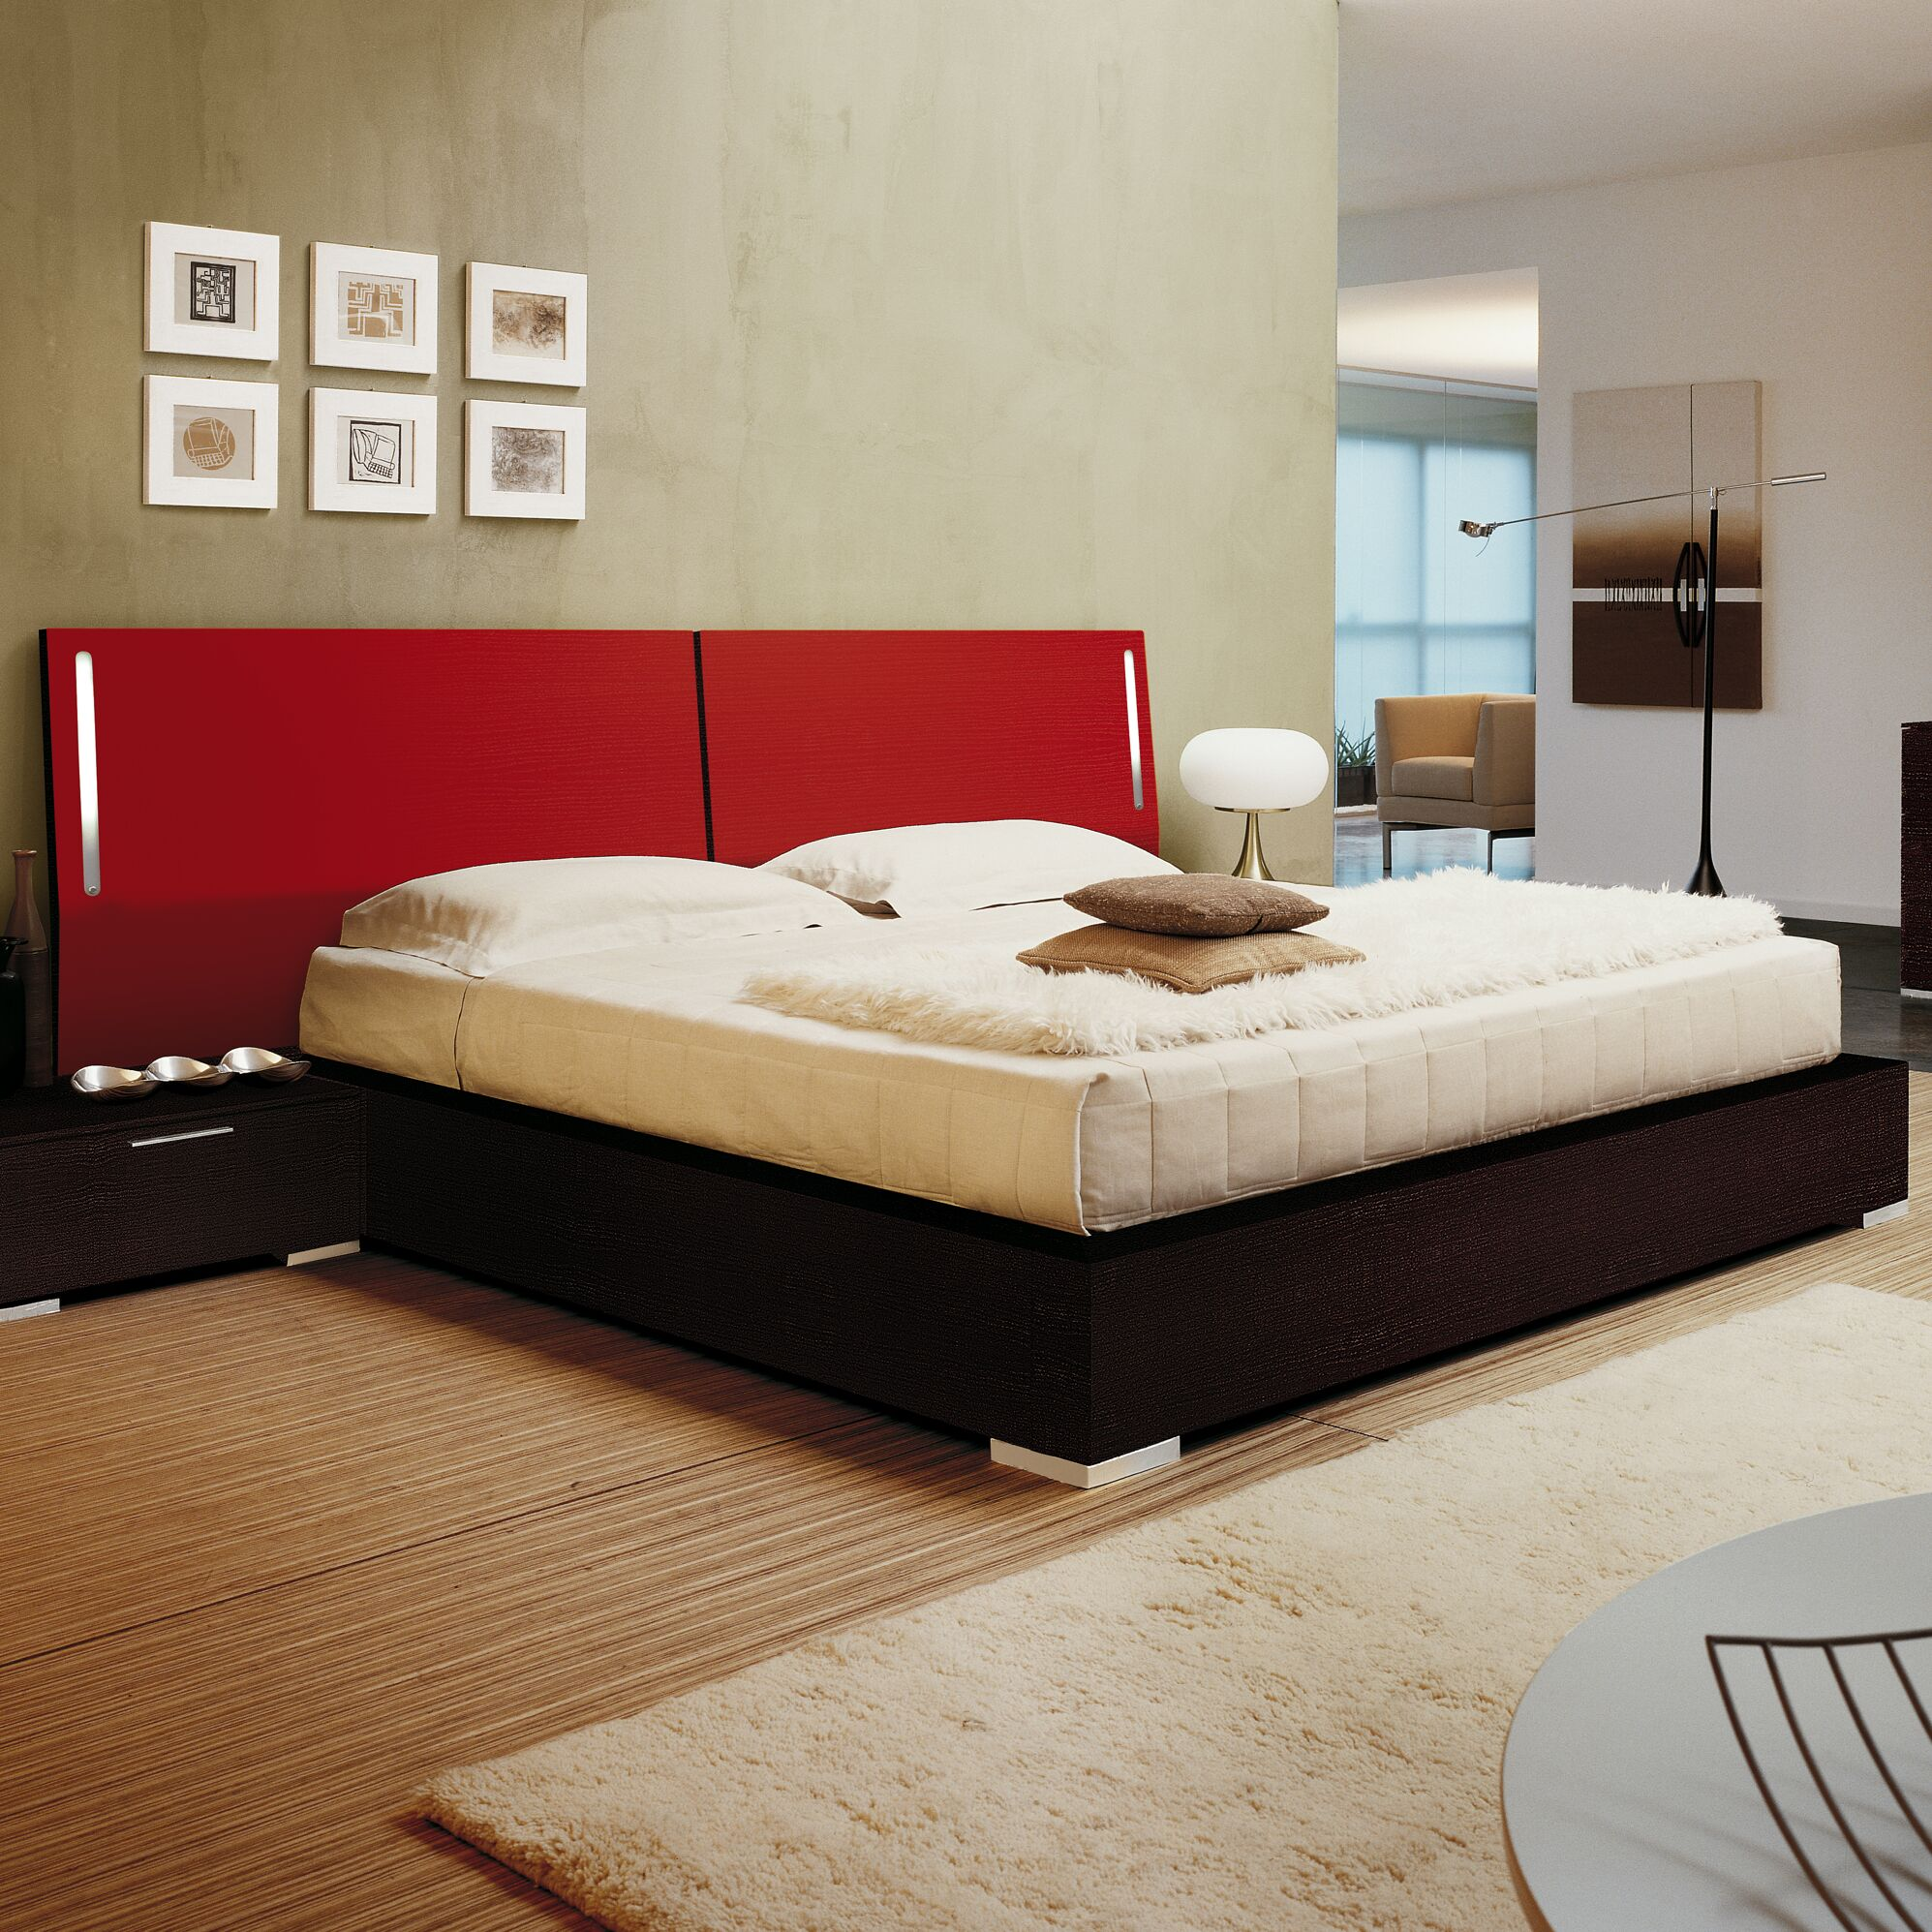 Enter Platform Bed Color: Lacquered Red HB, Size: Queen